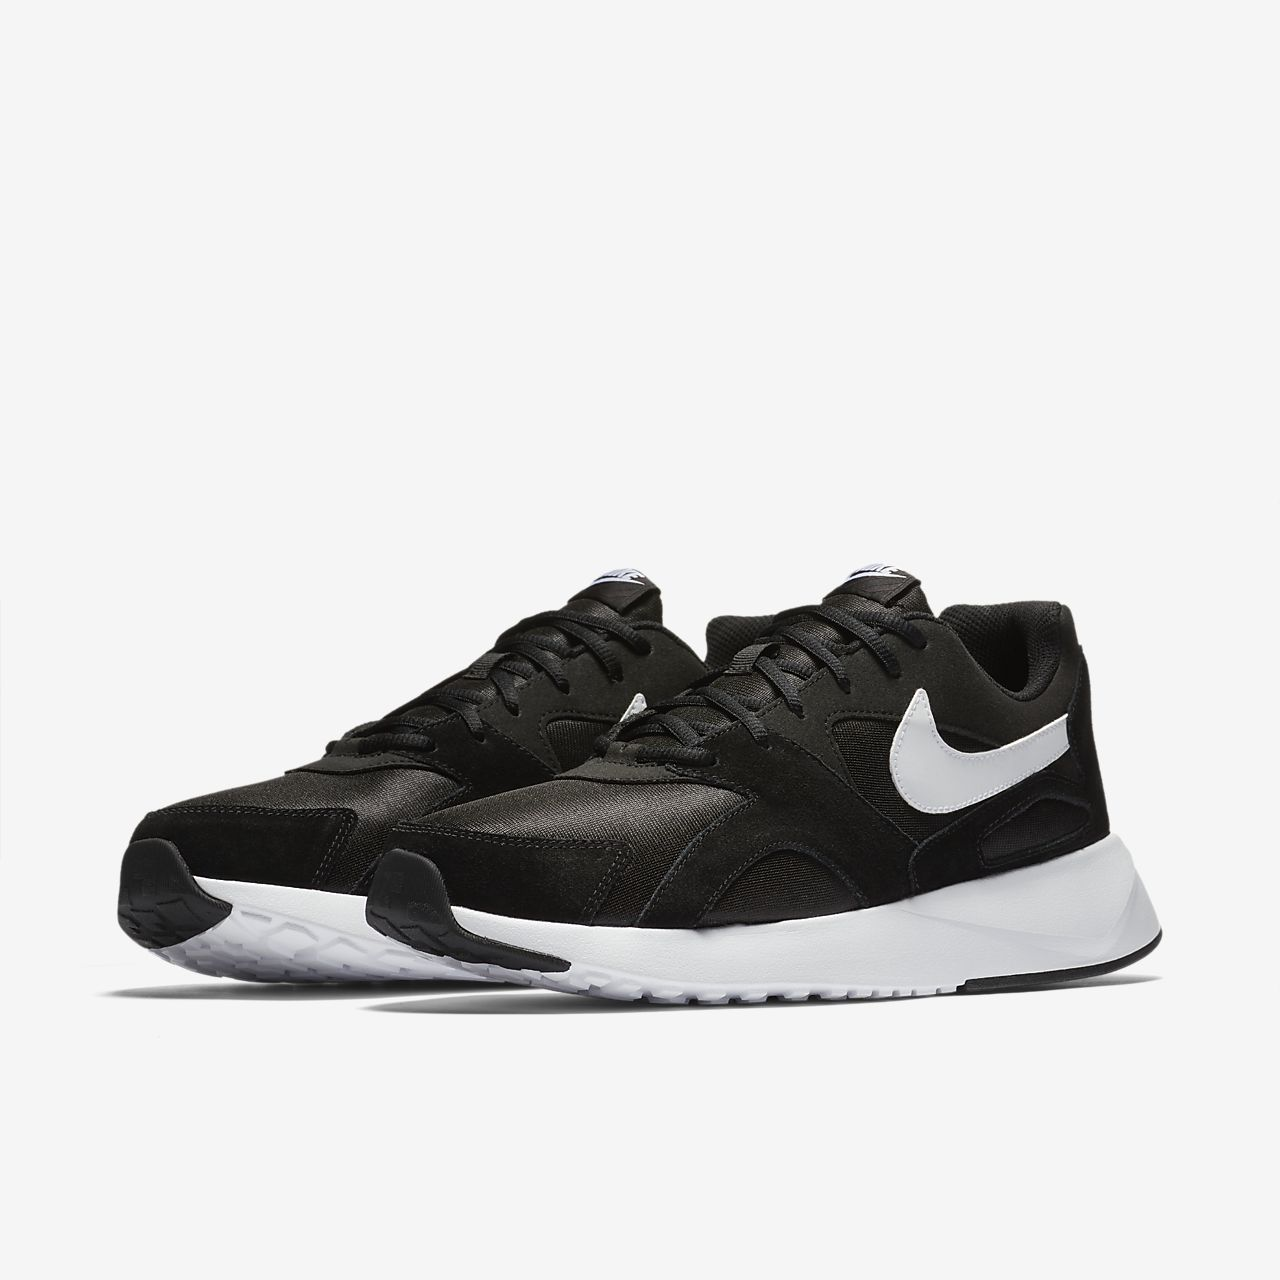 Low Resolution Nike Pantheos Men s Shoe Nike Pantheos Men s Shoe fbf67134796c5